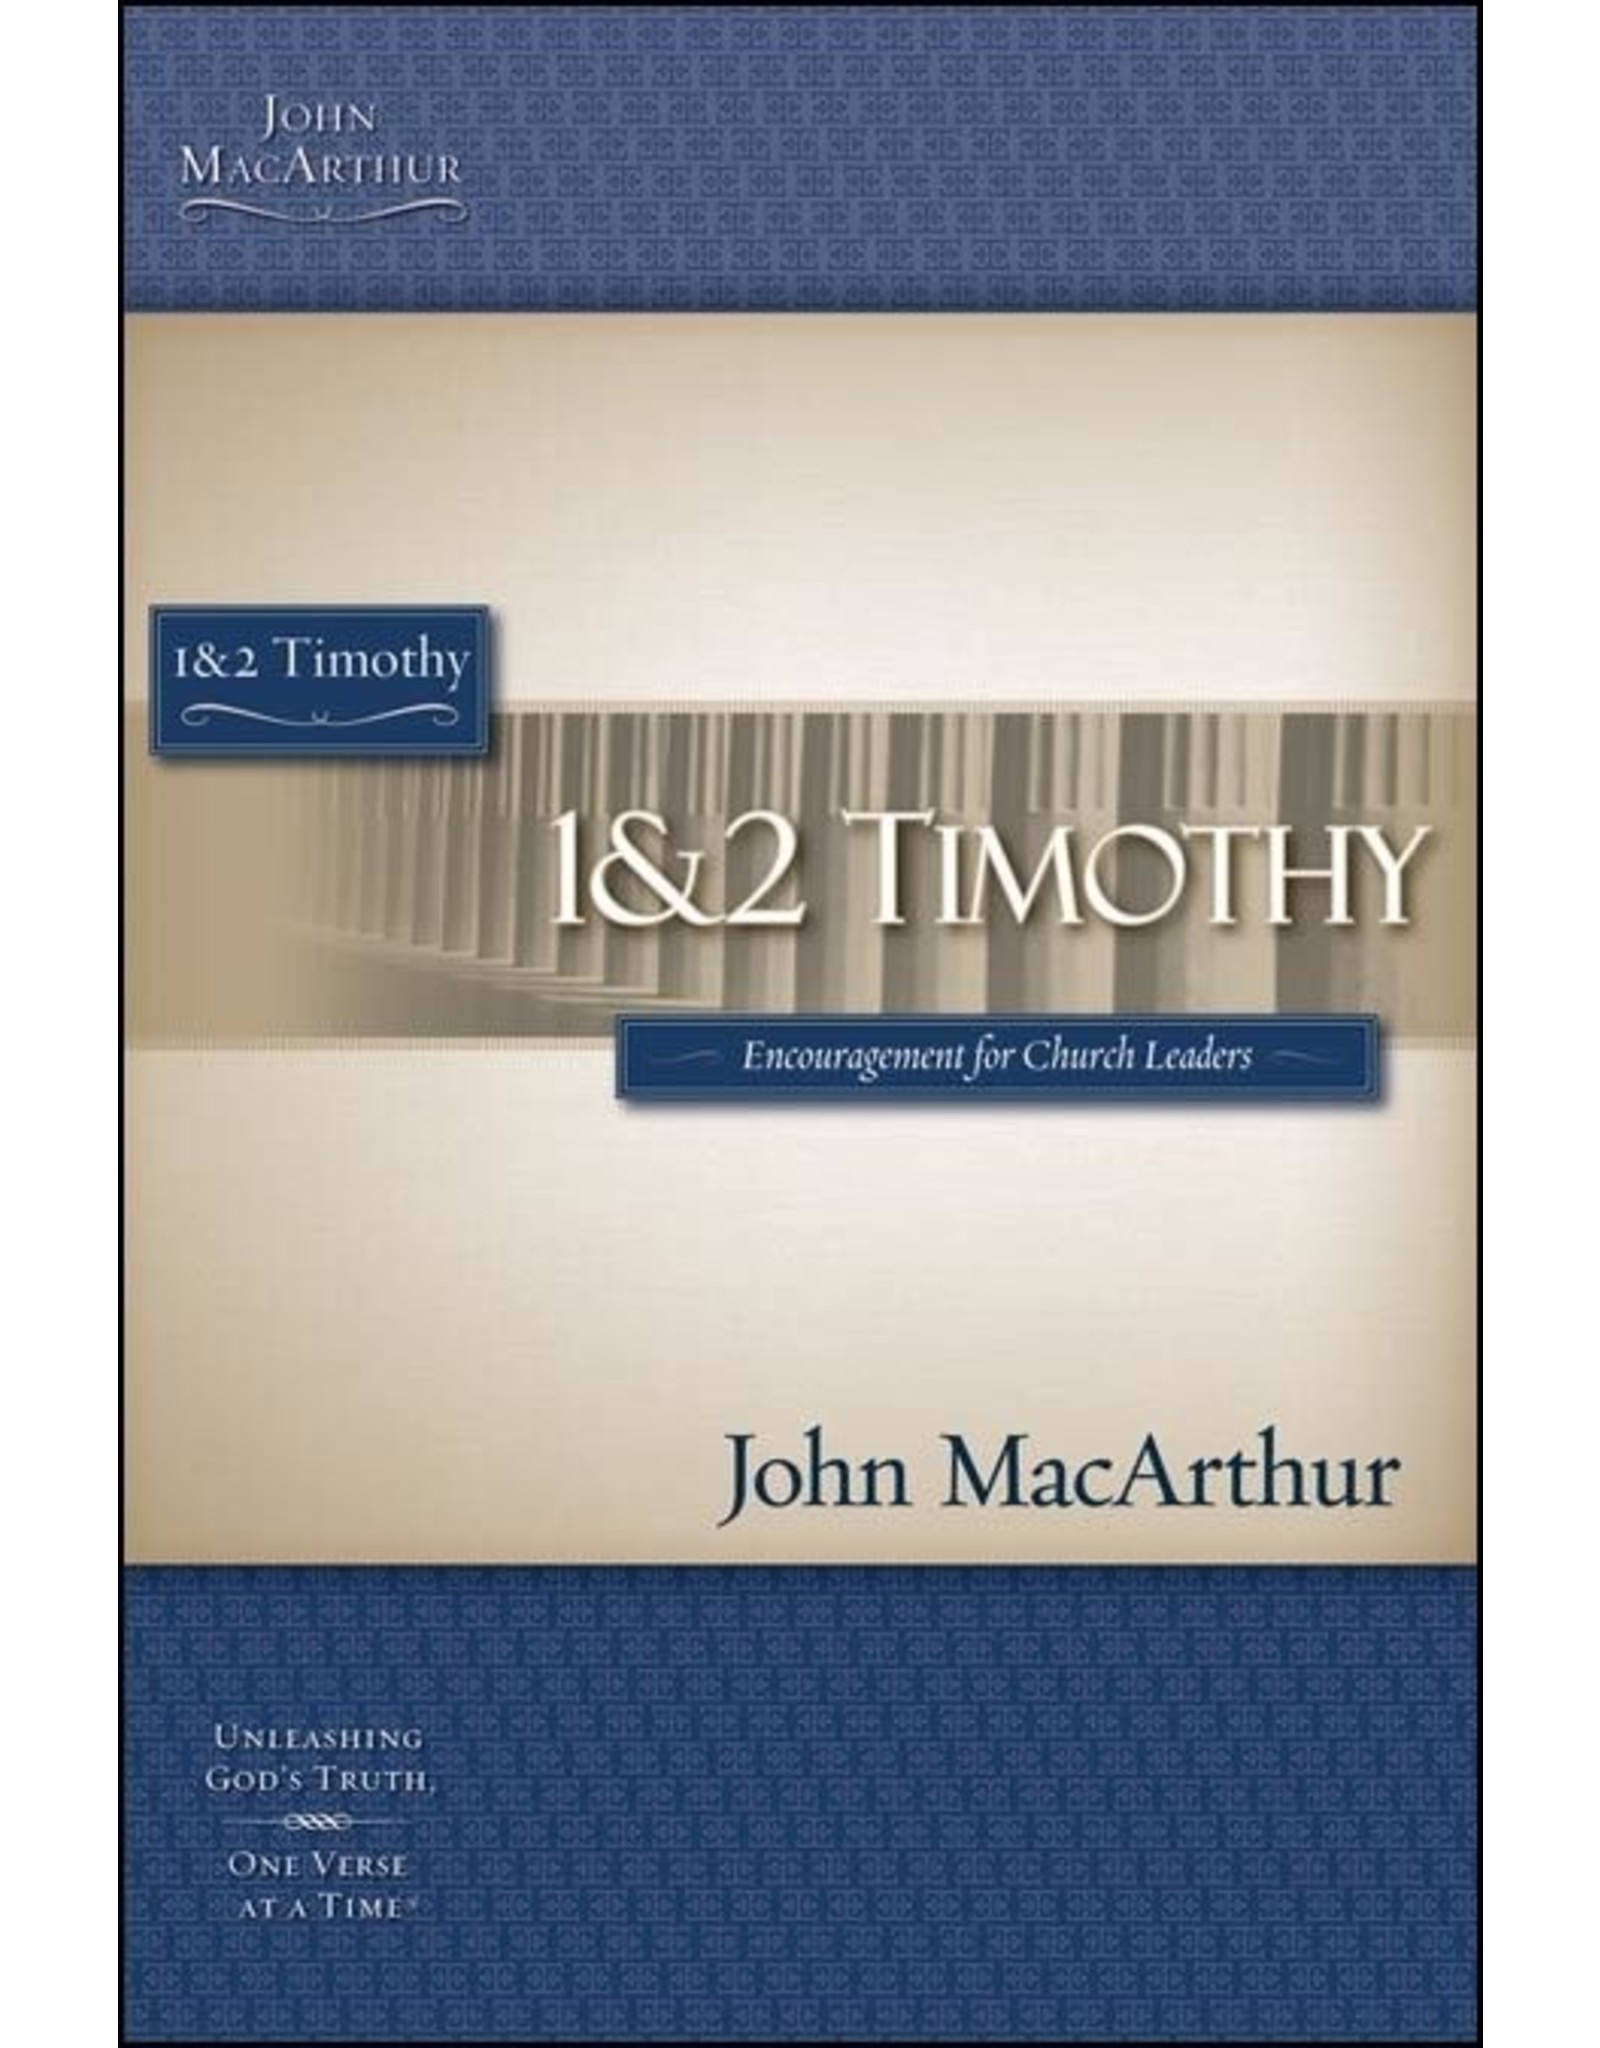 Harper Collins / Thomas Nelson / Zondervan (1st Ed.) MacArthur Bible Study (MBS): 1&2 Timothy